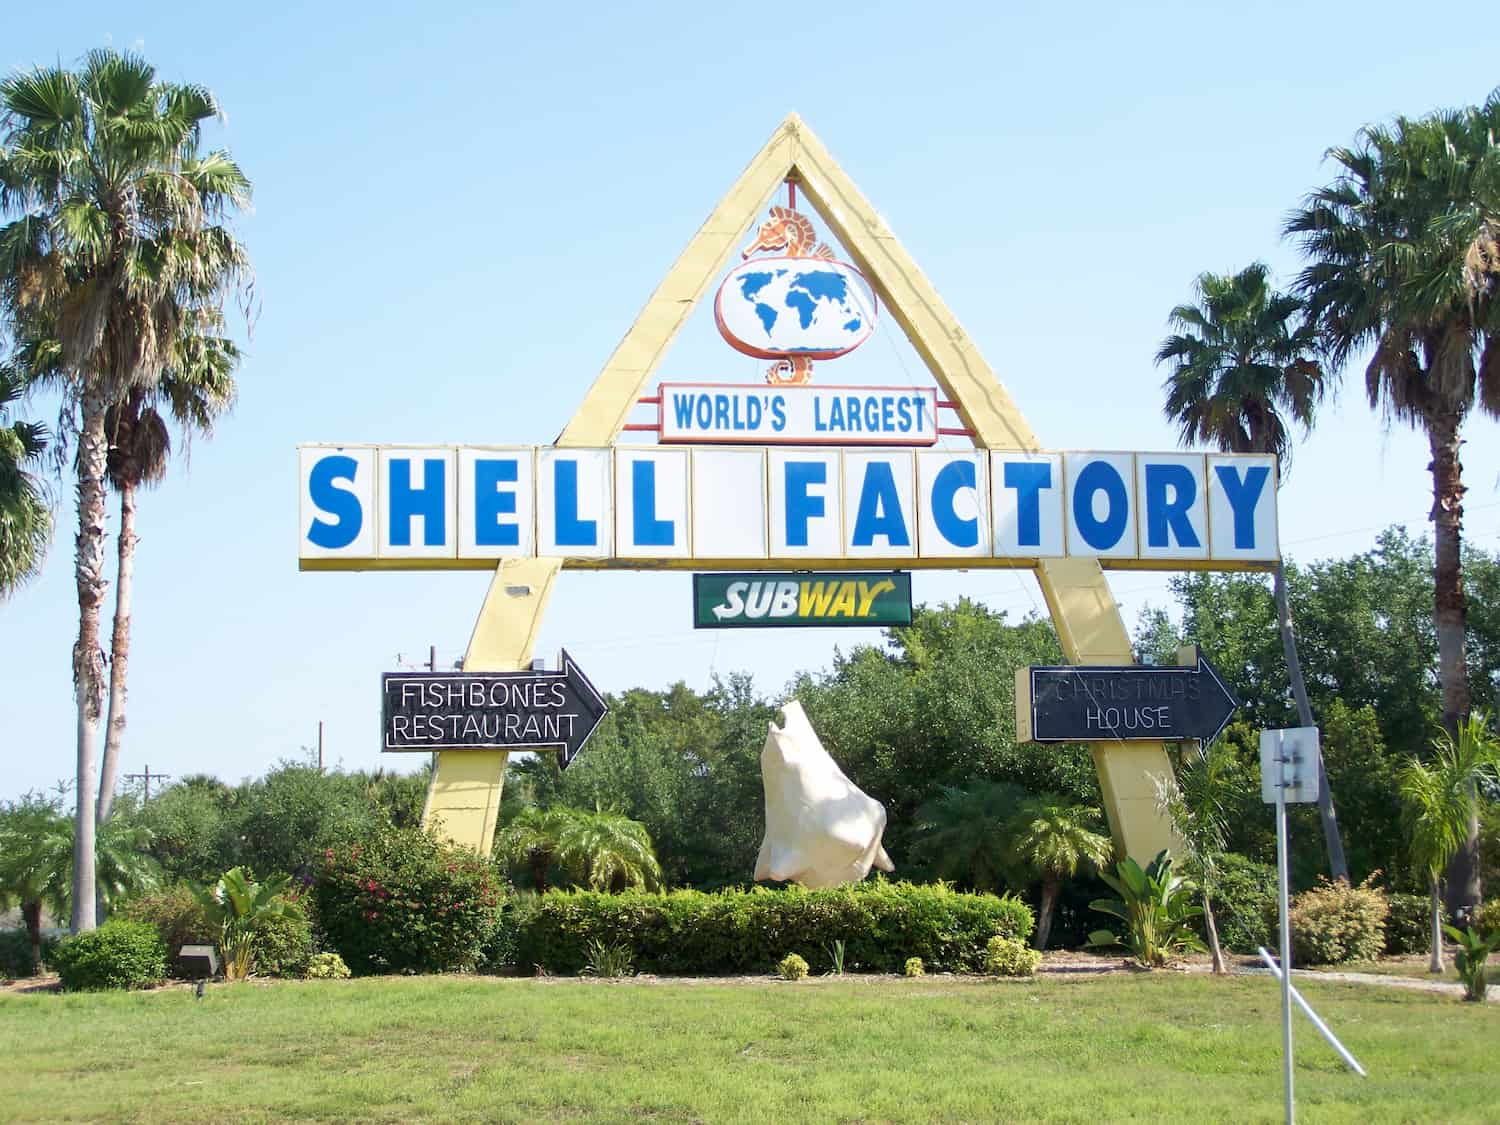 Shell_Factory_sign.jpg